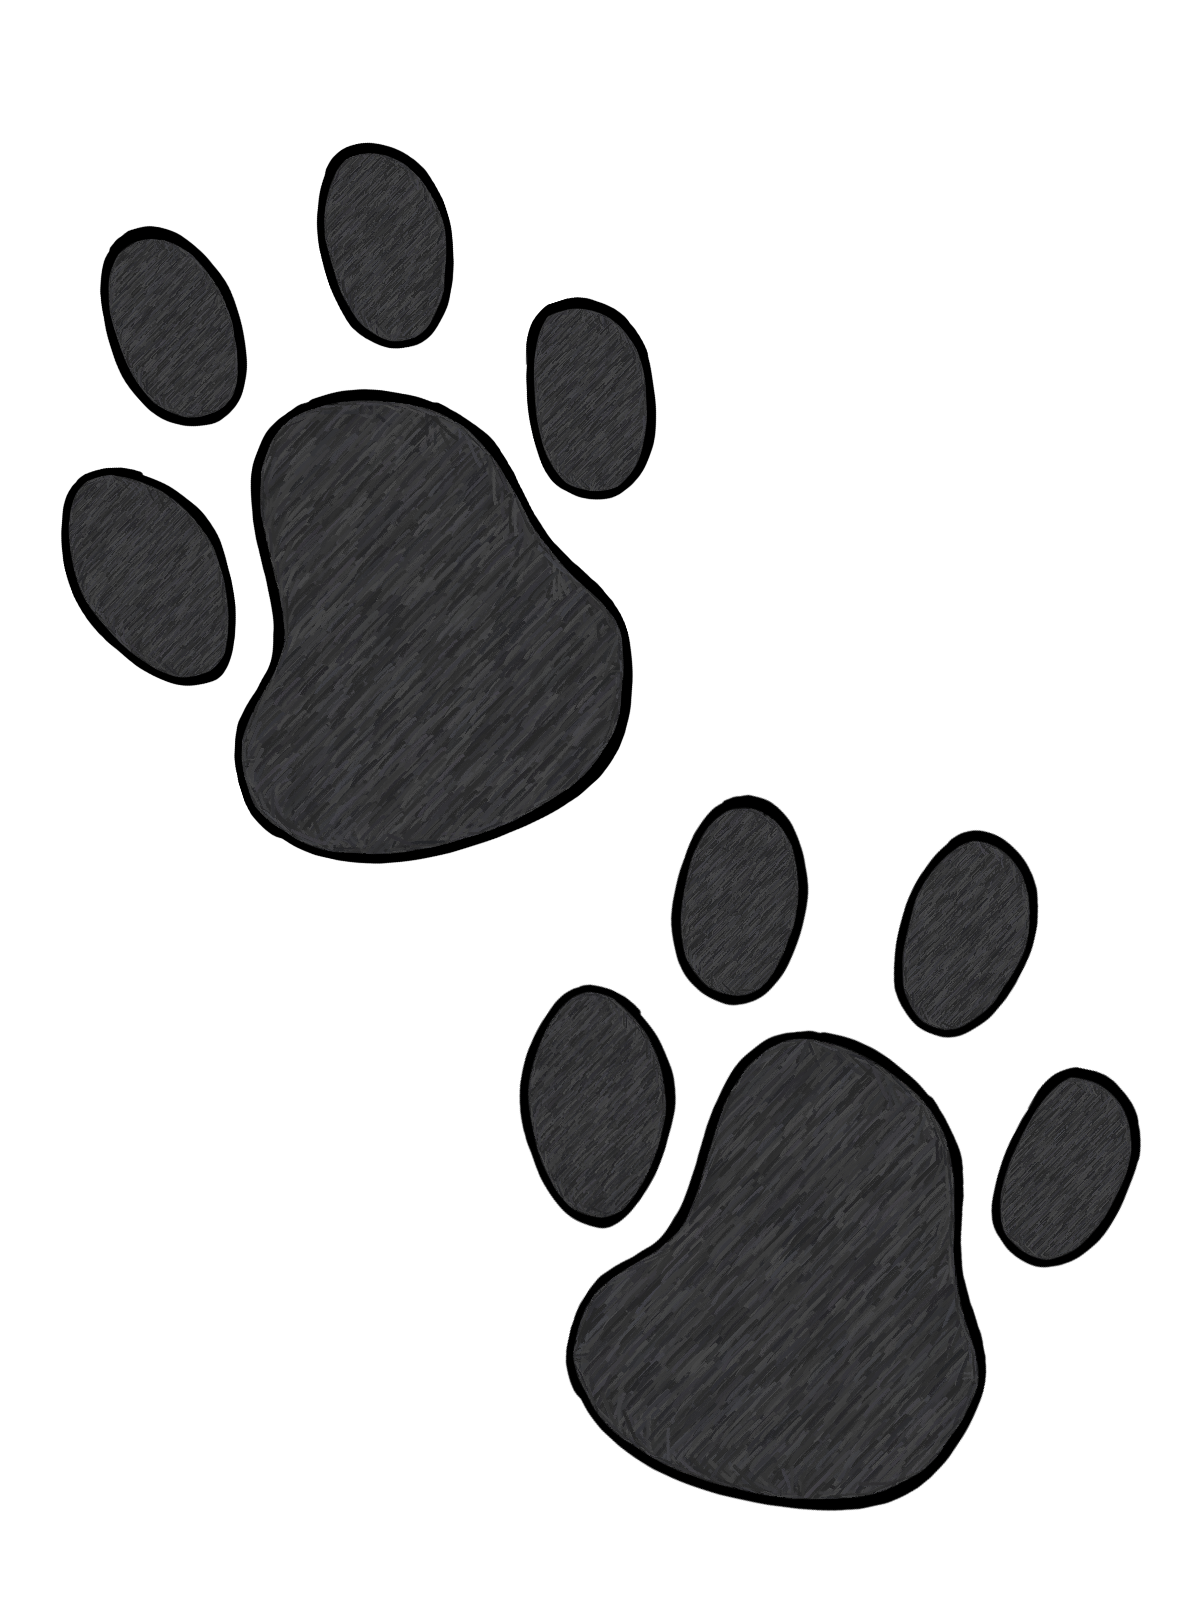 Free Paw Print Pictures, Download Free Clip Art, Free Clip.